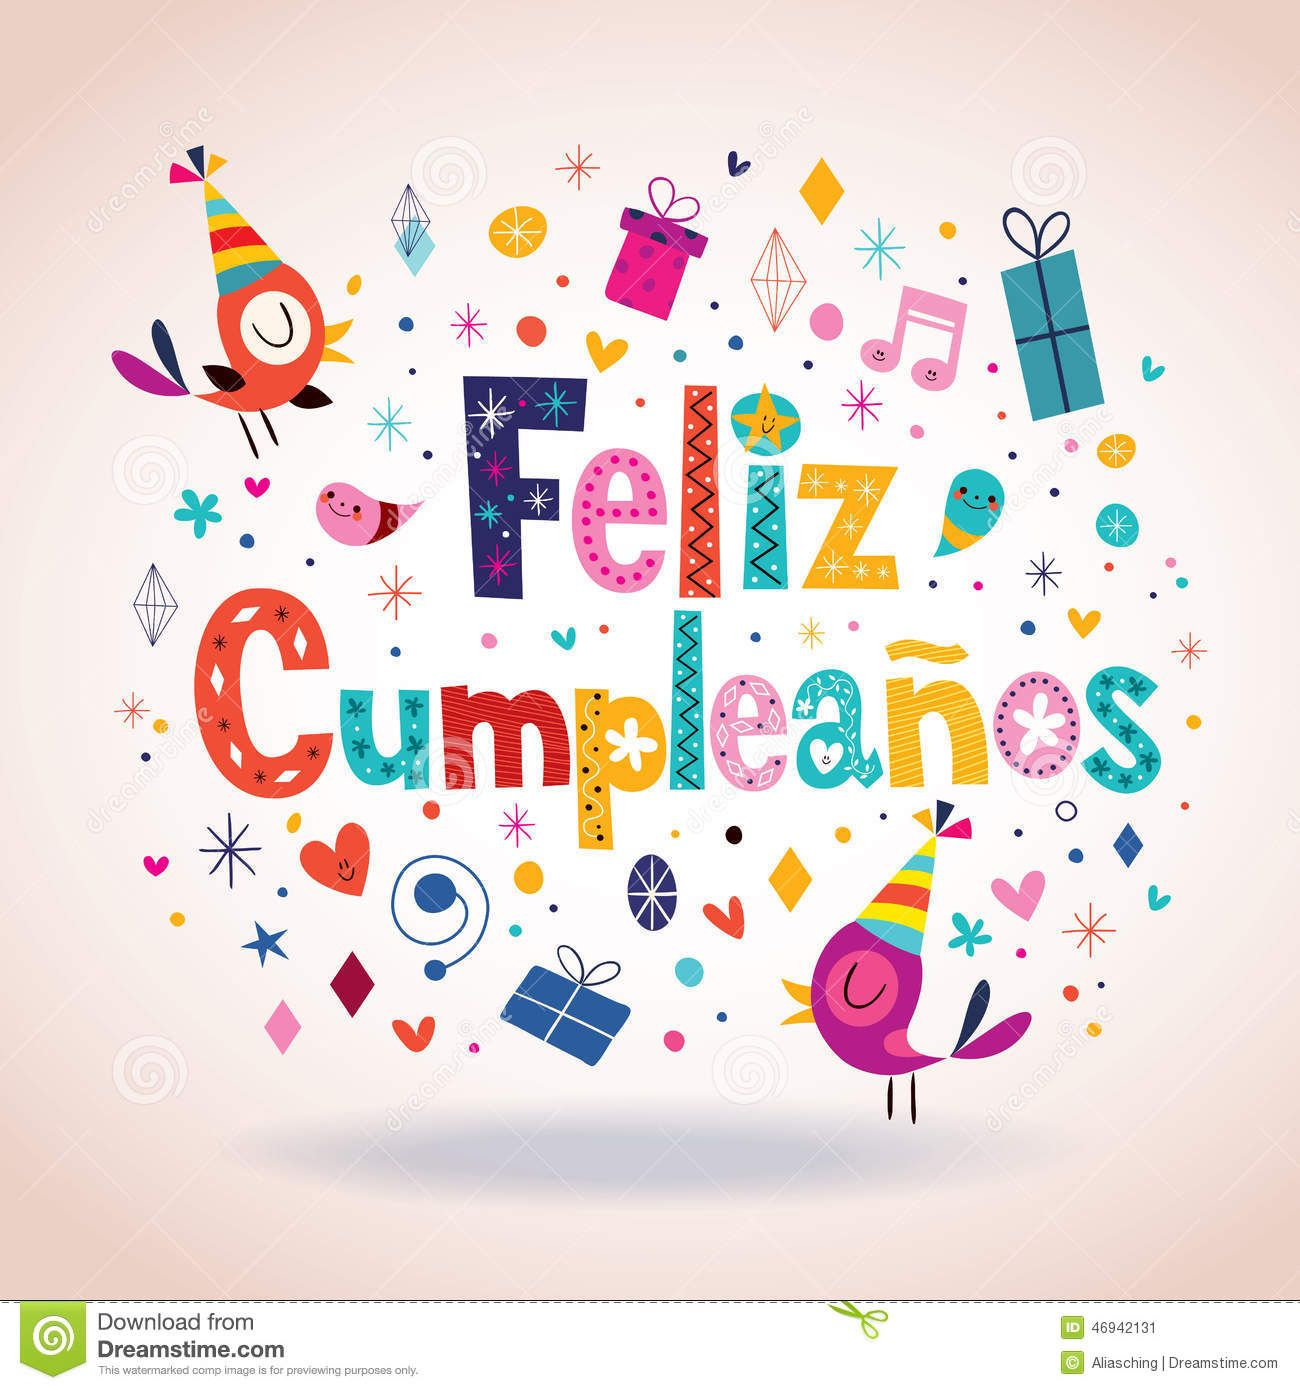 Feliz Cumpleanos - Happy Birthday In Spanish Card - Download From - Free Printable Happy Birthday Cards In Spanish